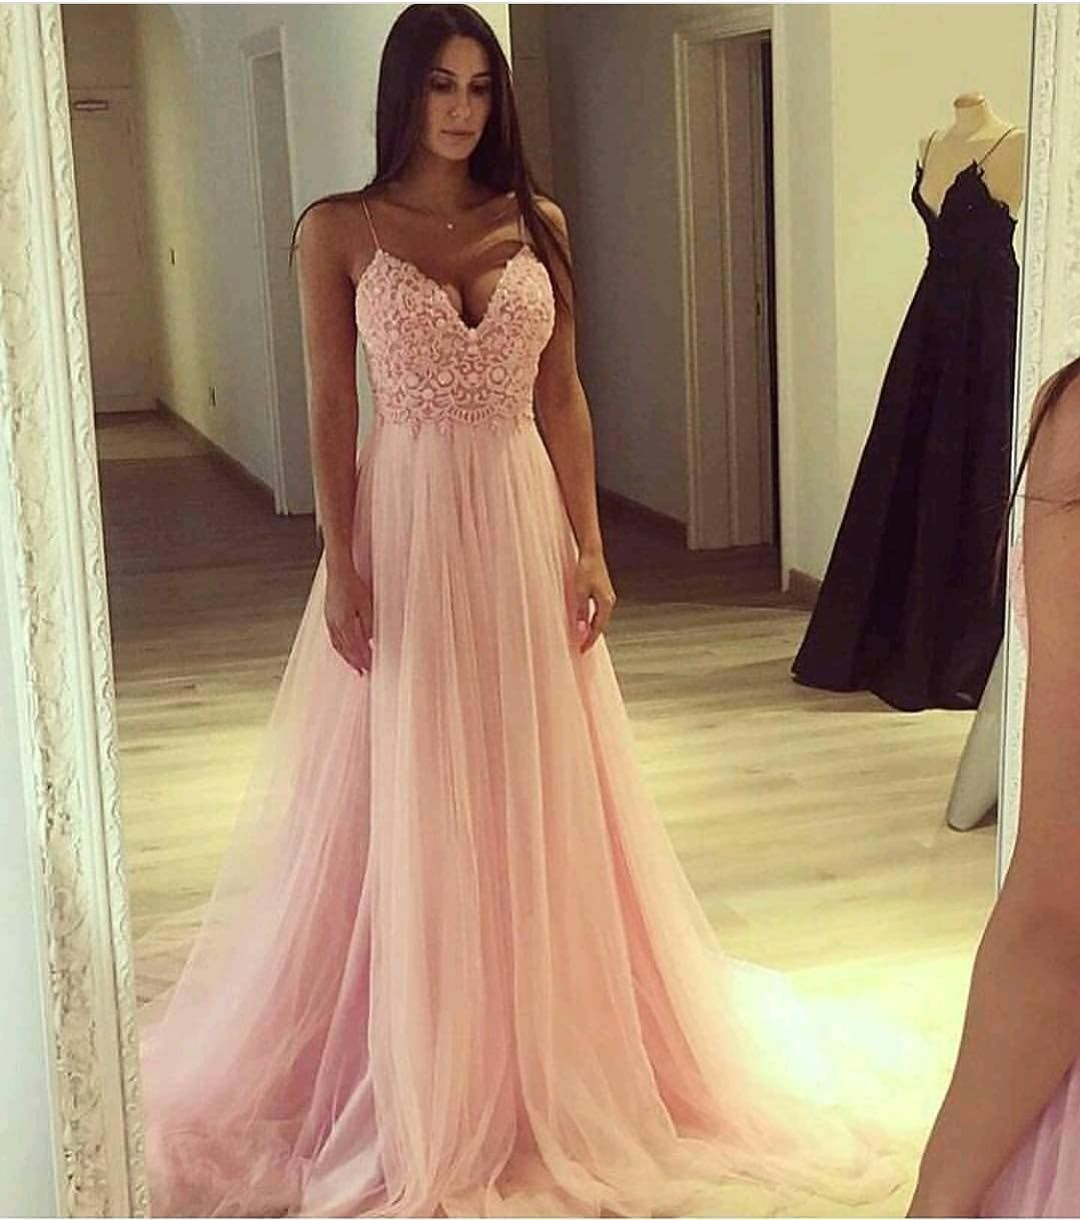 Custom Evening Dresses - Couture Formal Ball Gowns by Darius   Dream ...